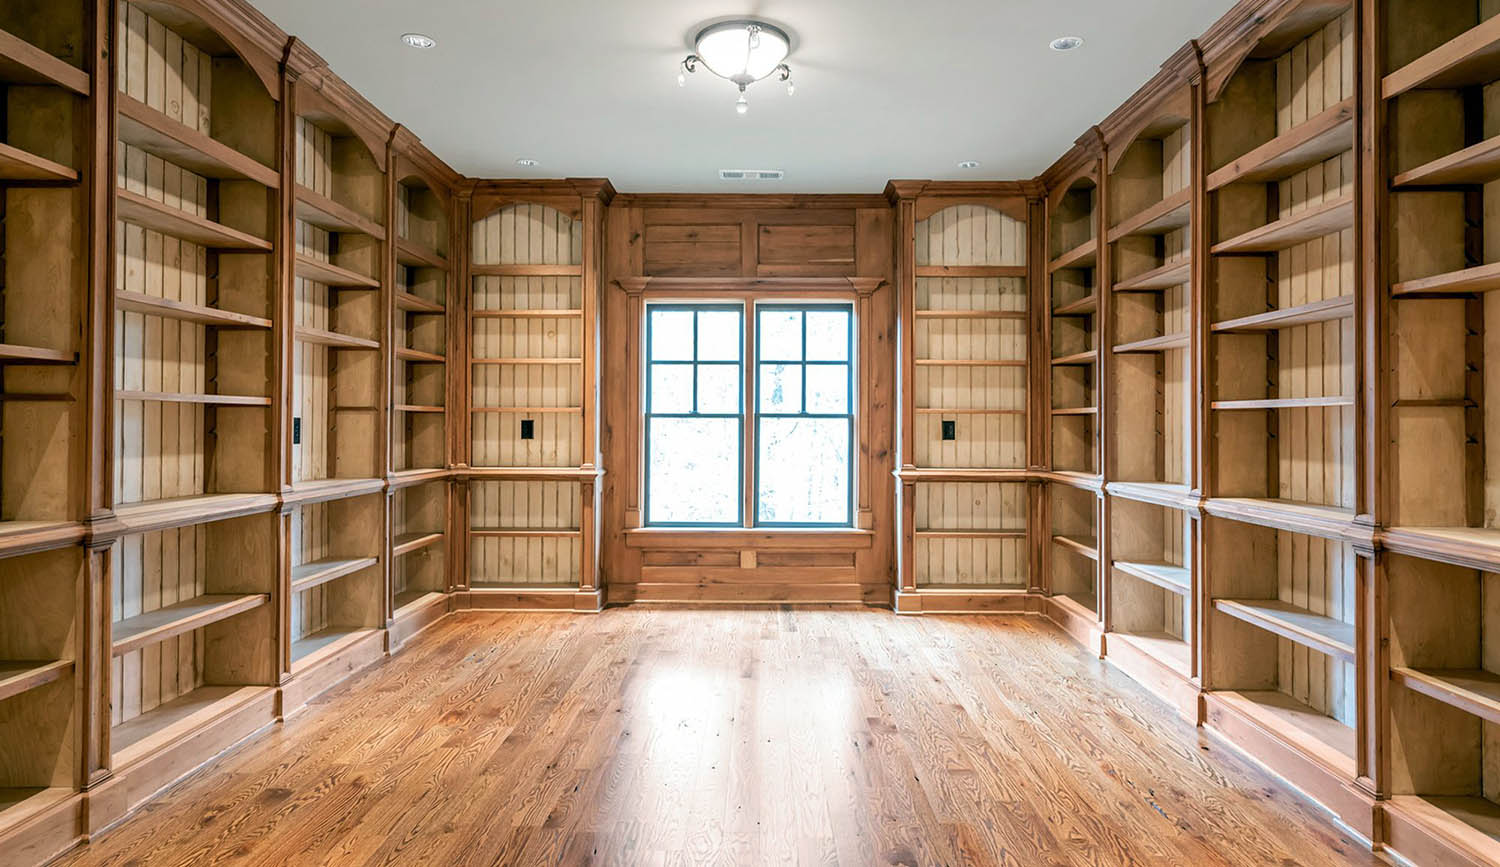 Library / office with all wood wall paneling and built in shelving. Matching hardwood floors. White ceiling.